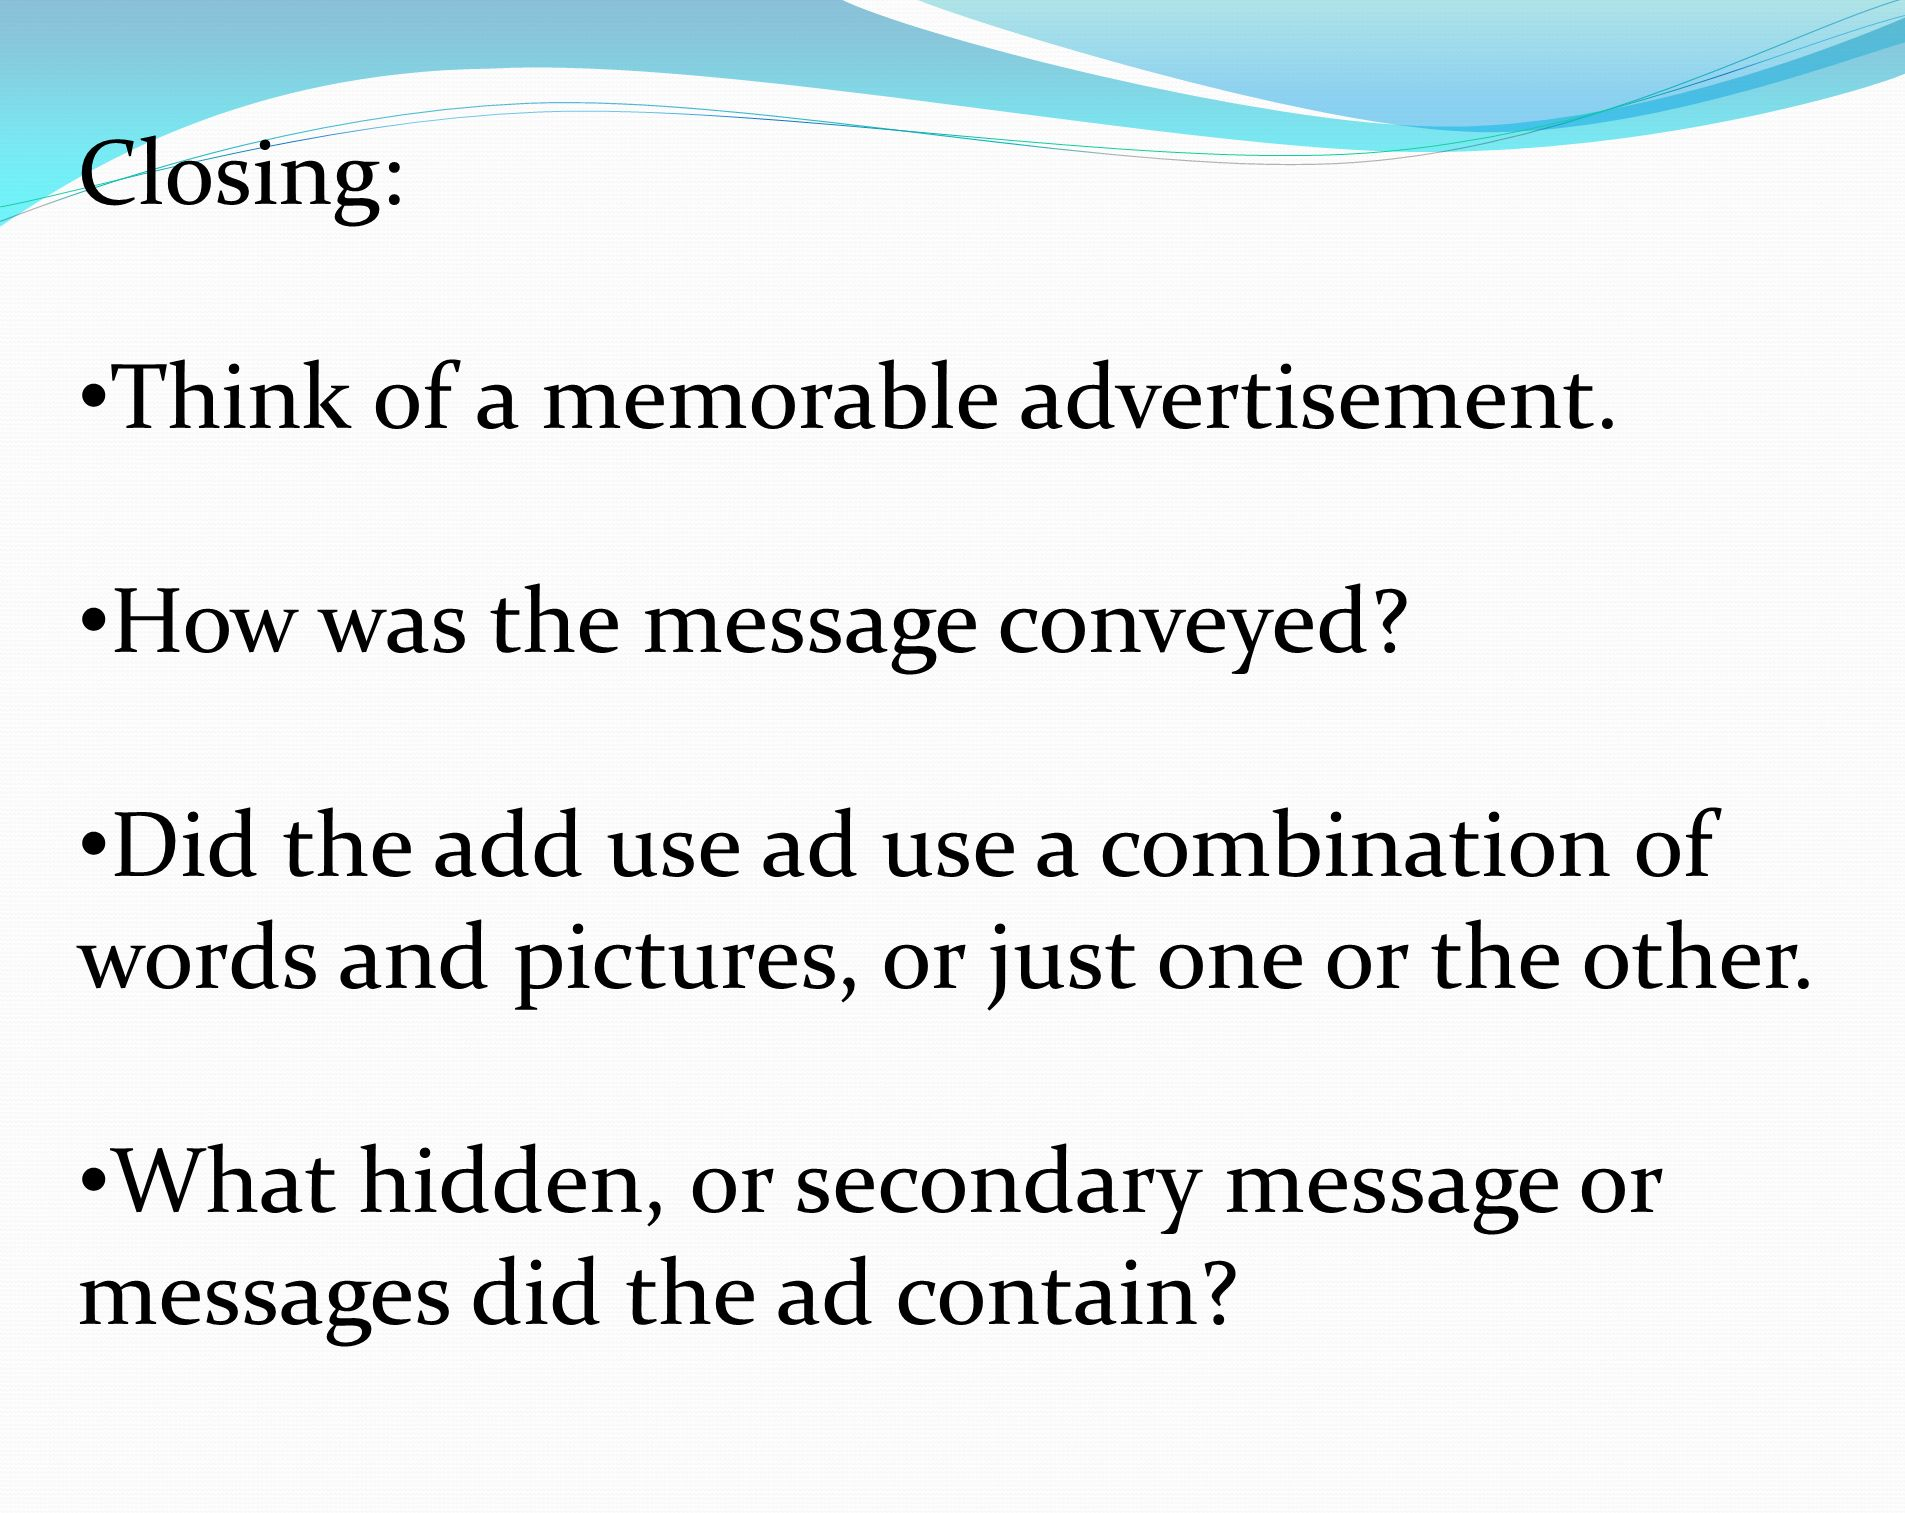 Closing: Think of a memorable advertisement. How was the message conveyed